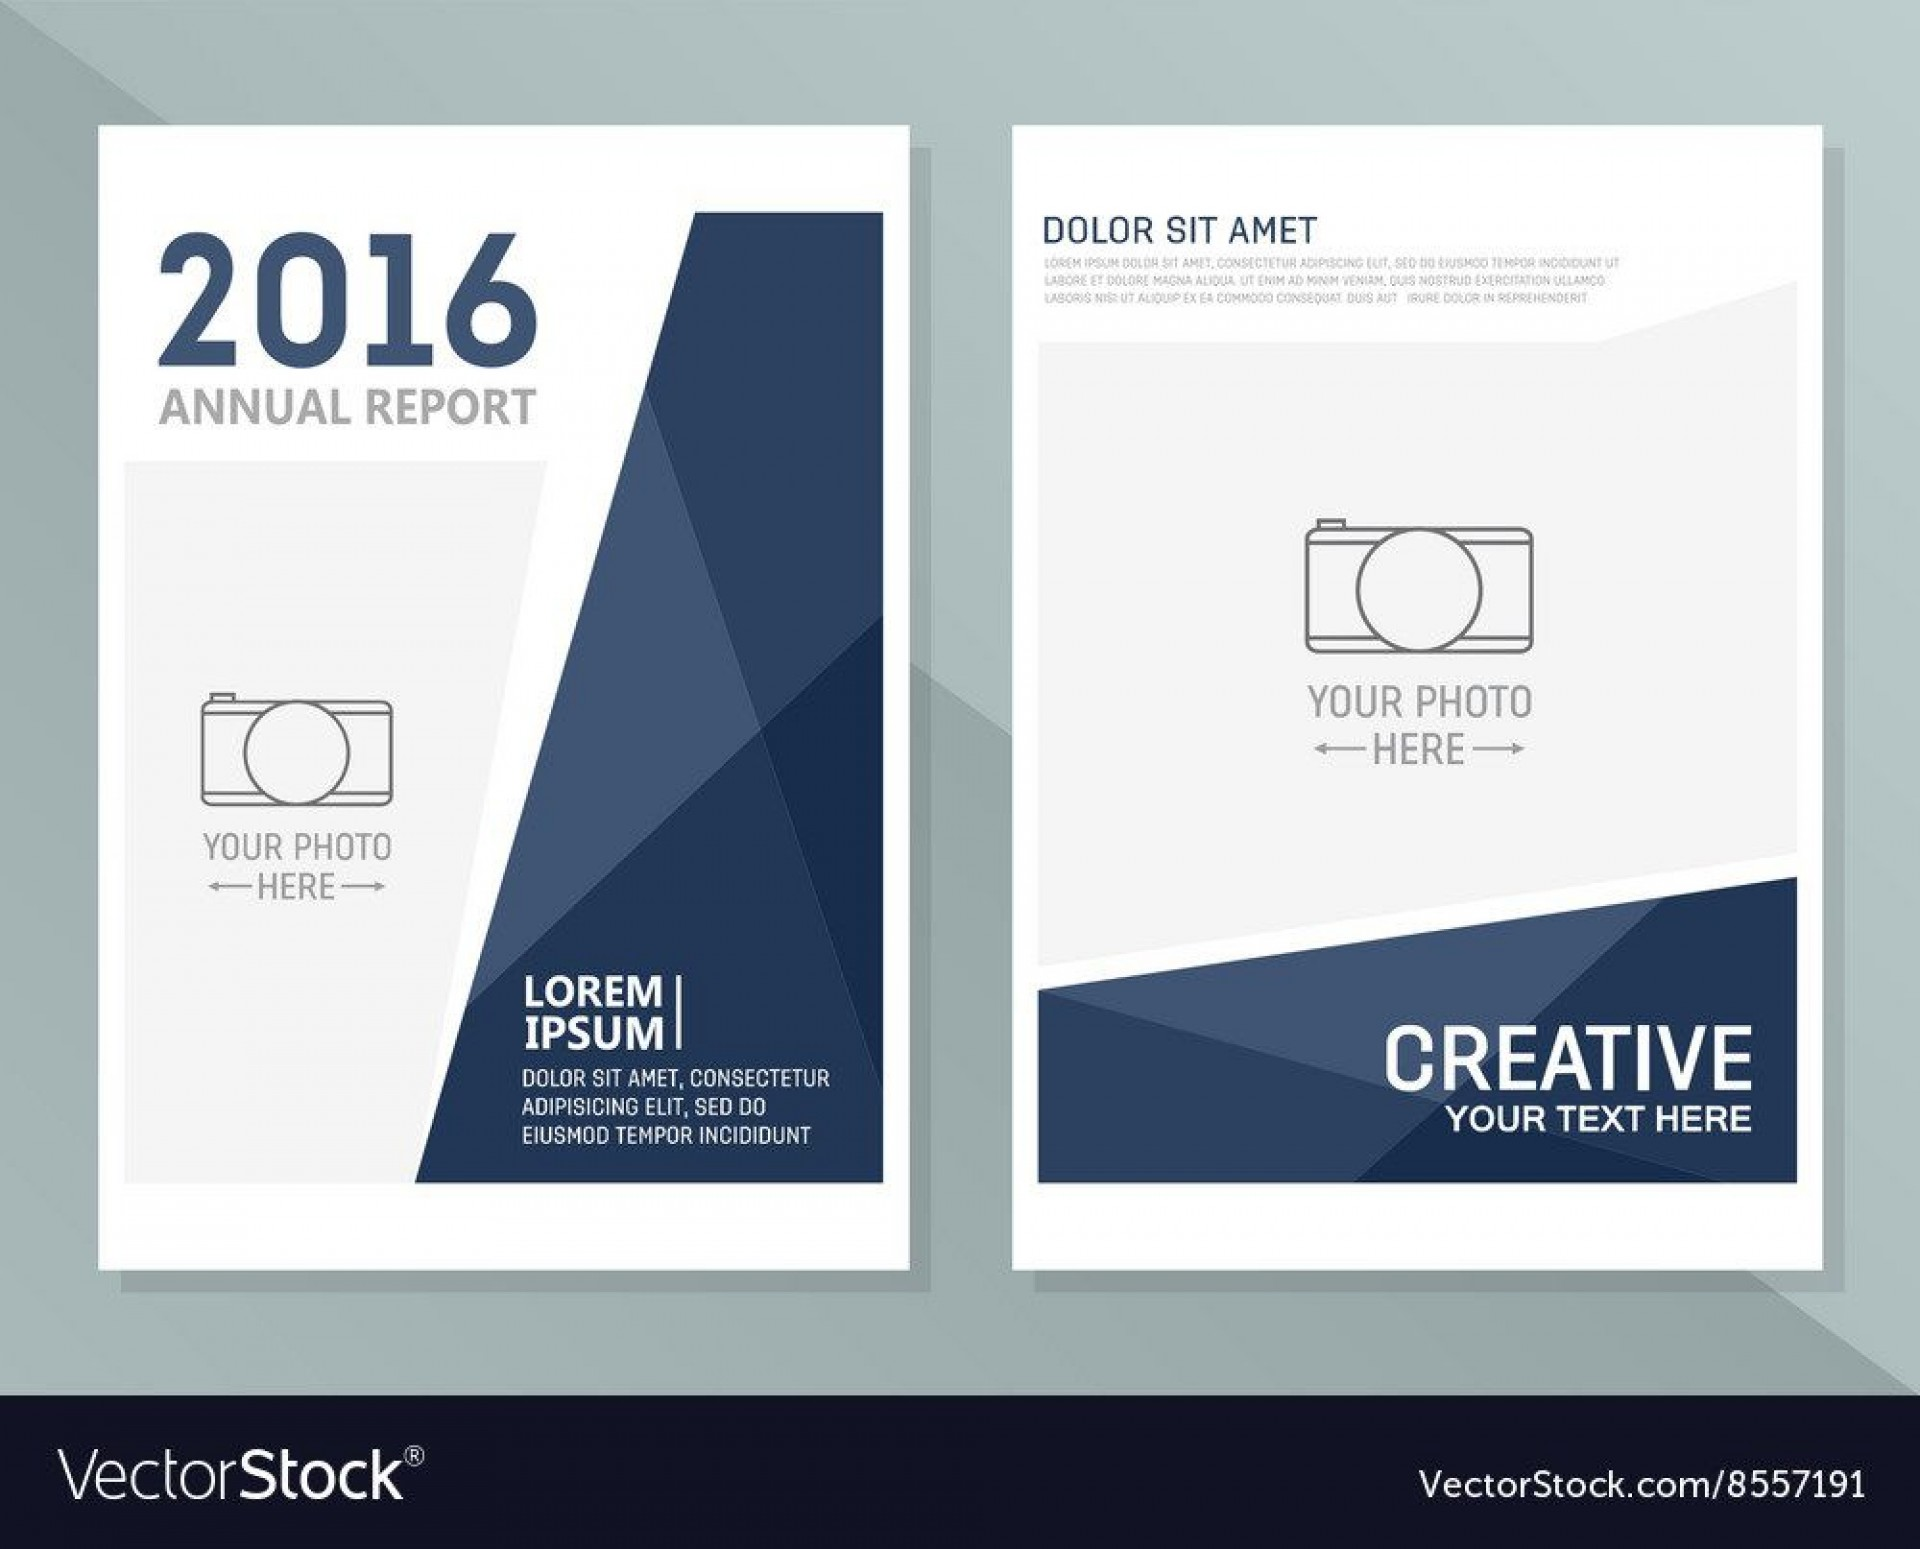 007 Unforgettable Annual Report Design Template Highest Quality  Templates Word Timeles Free Download In1920